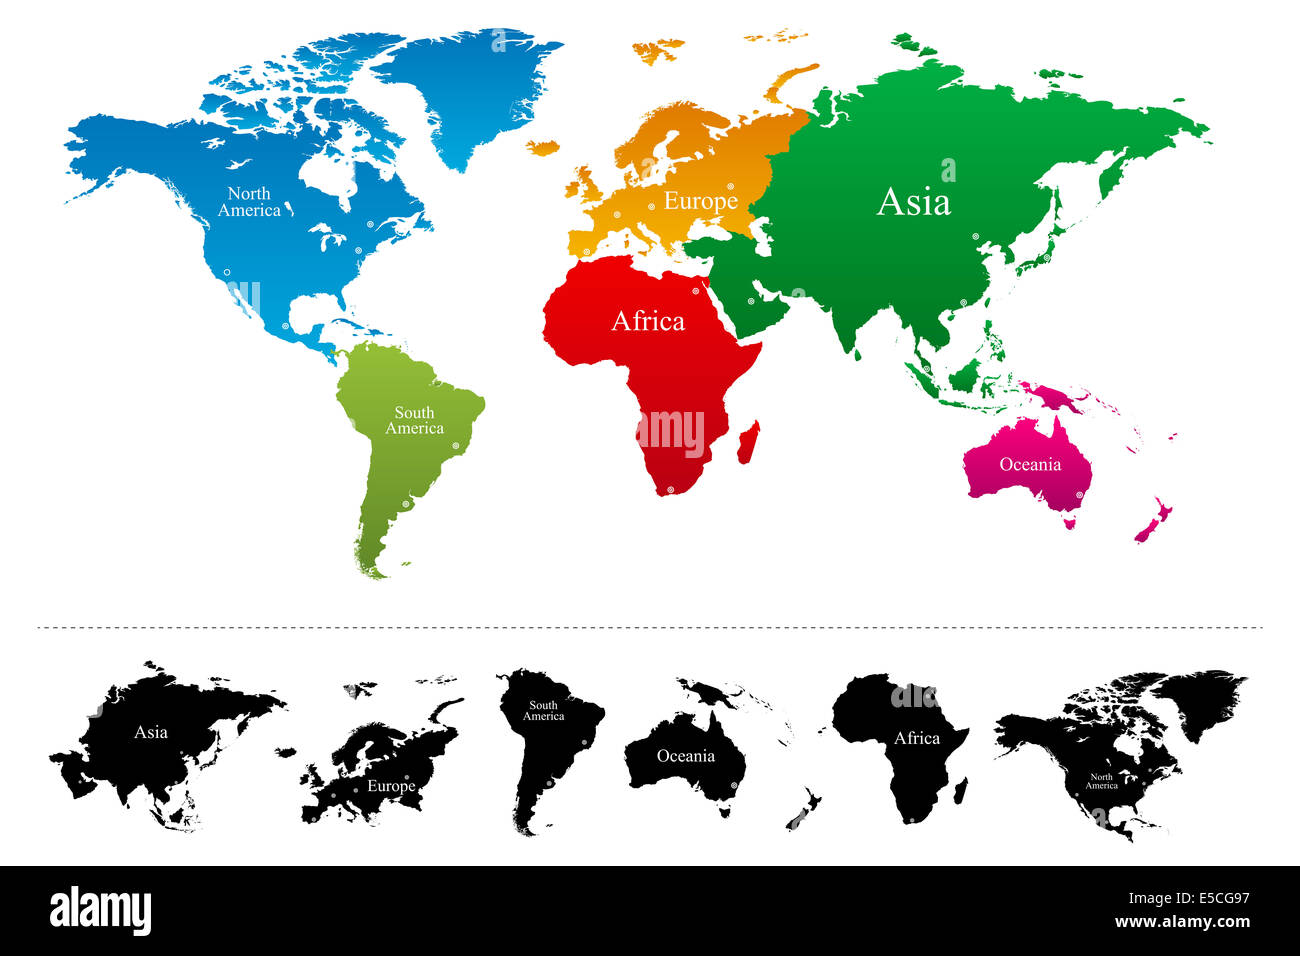 World map with colorful continents Atlas Stock Photo